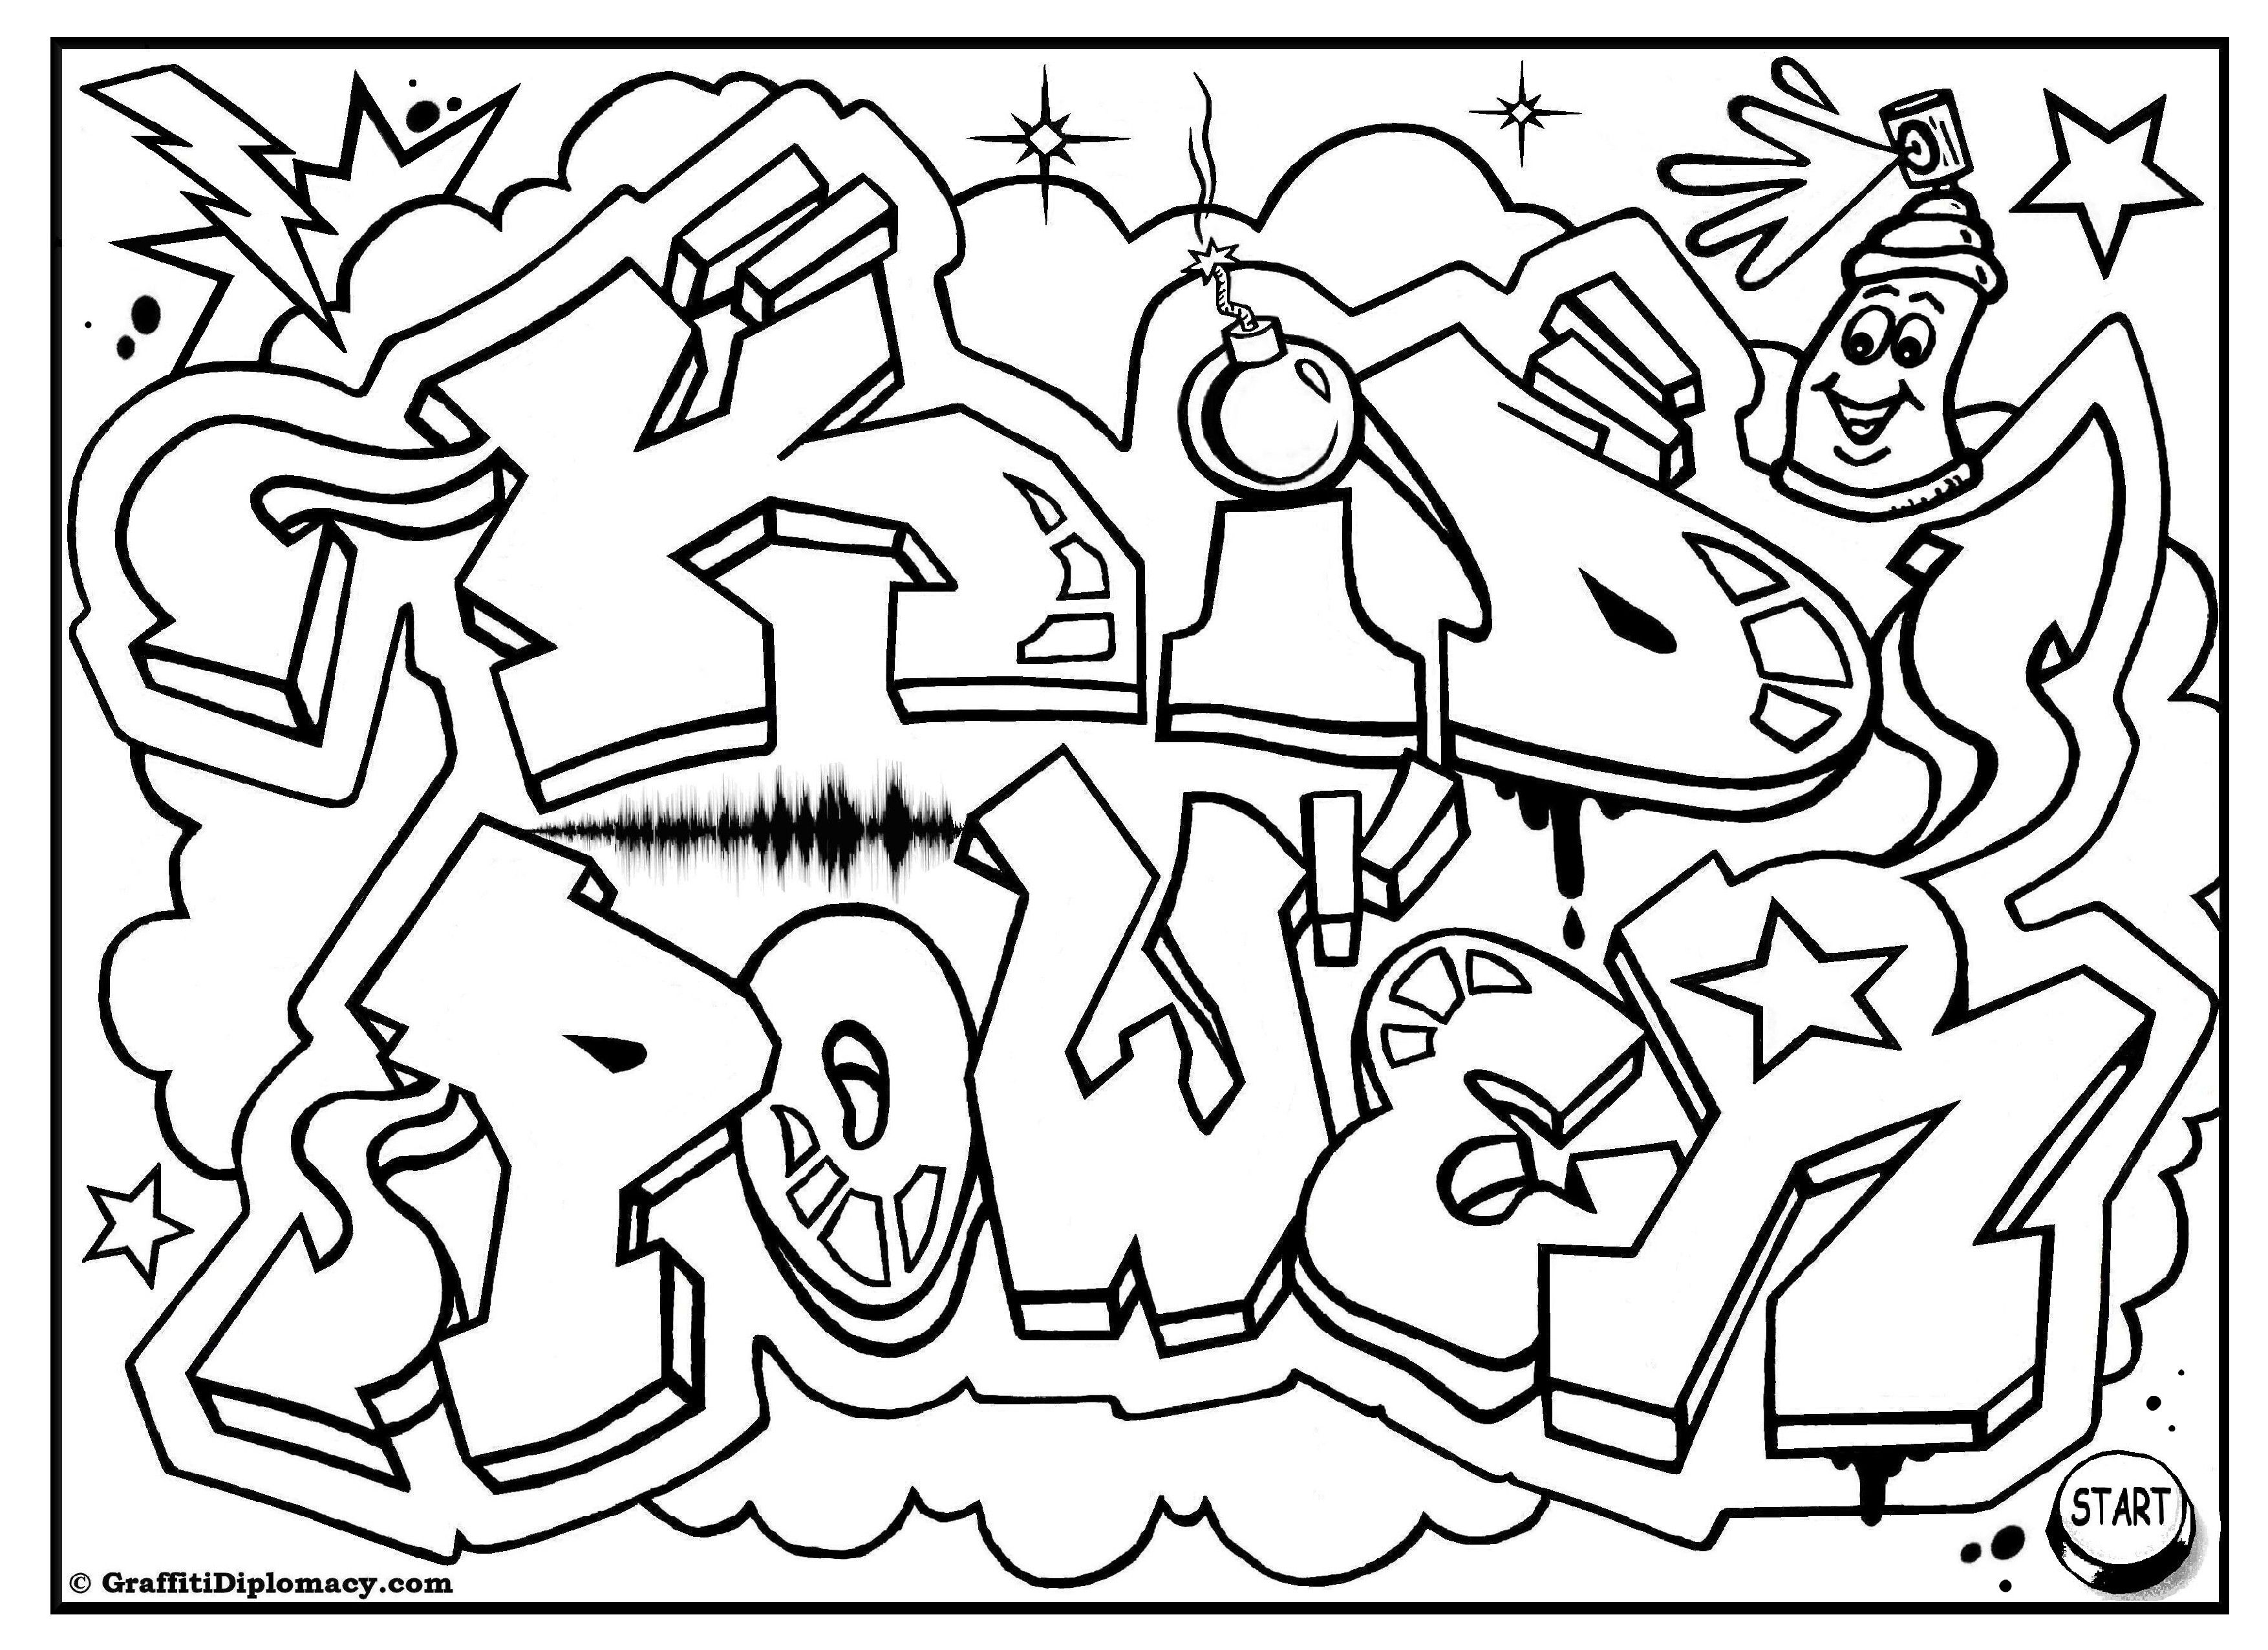 Peace Graffiti, free printable coloring page | Free Coloring Pages ...